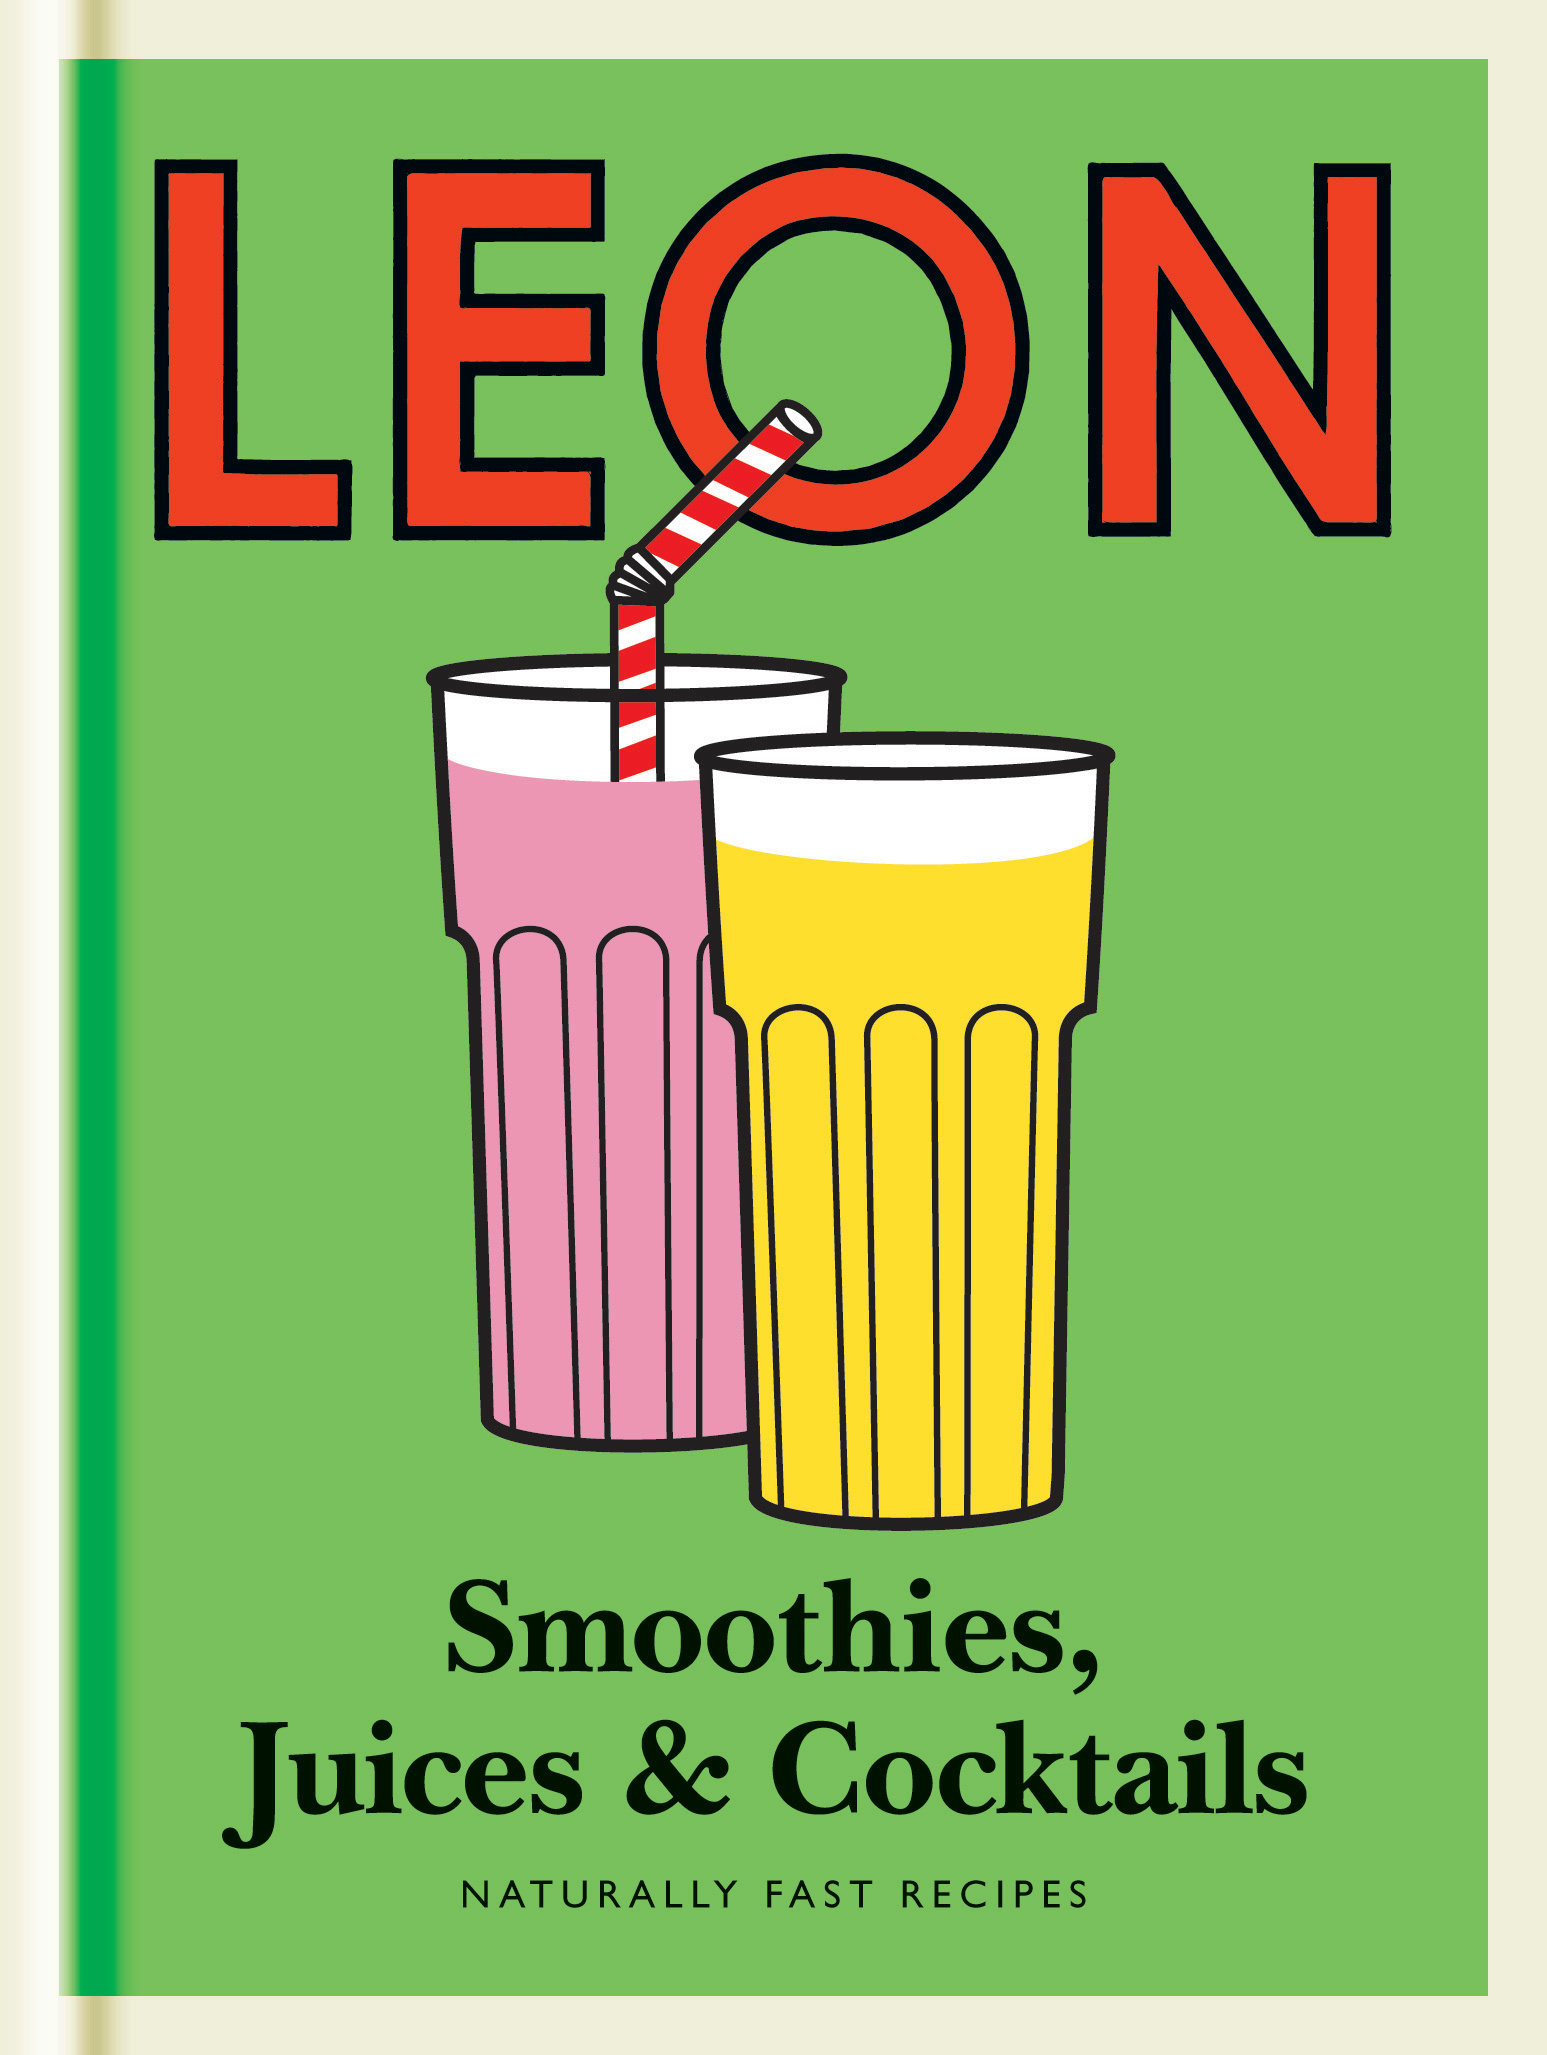 Little Leon Smoothies Juices Cocktails Naturally Fast Recipes